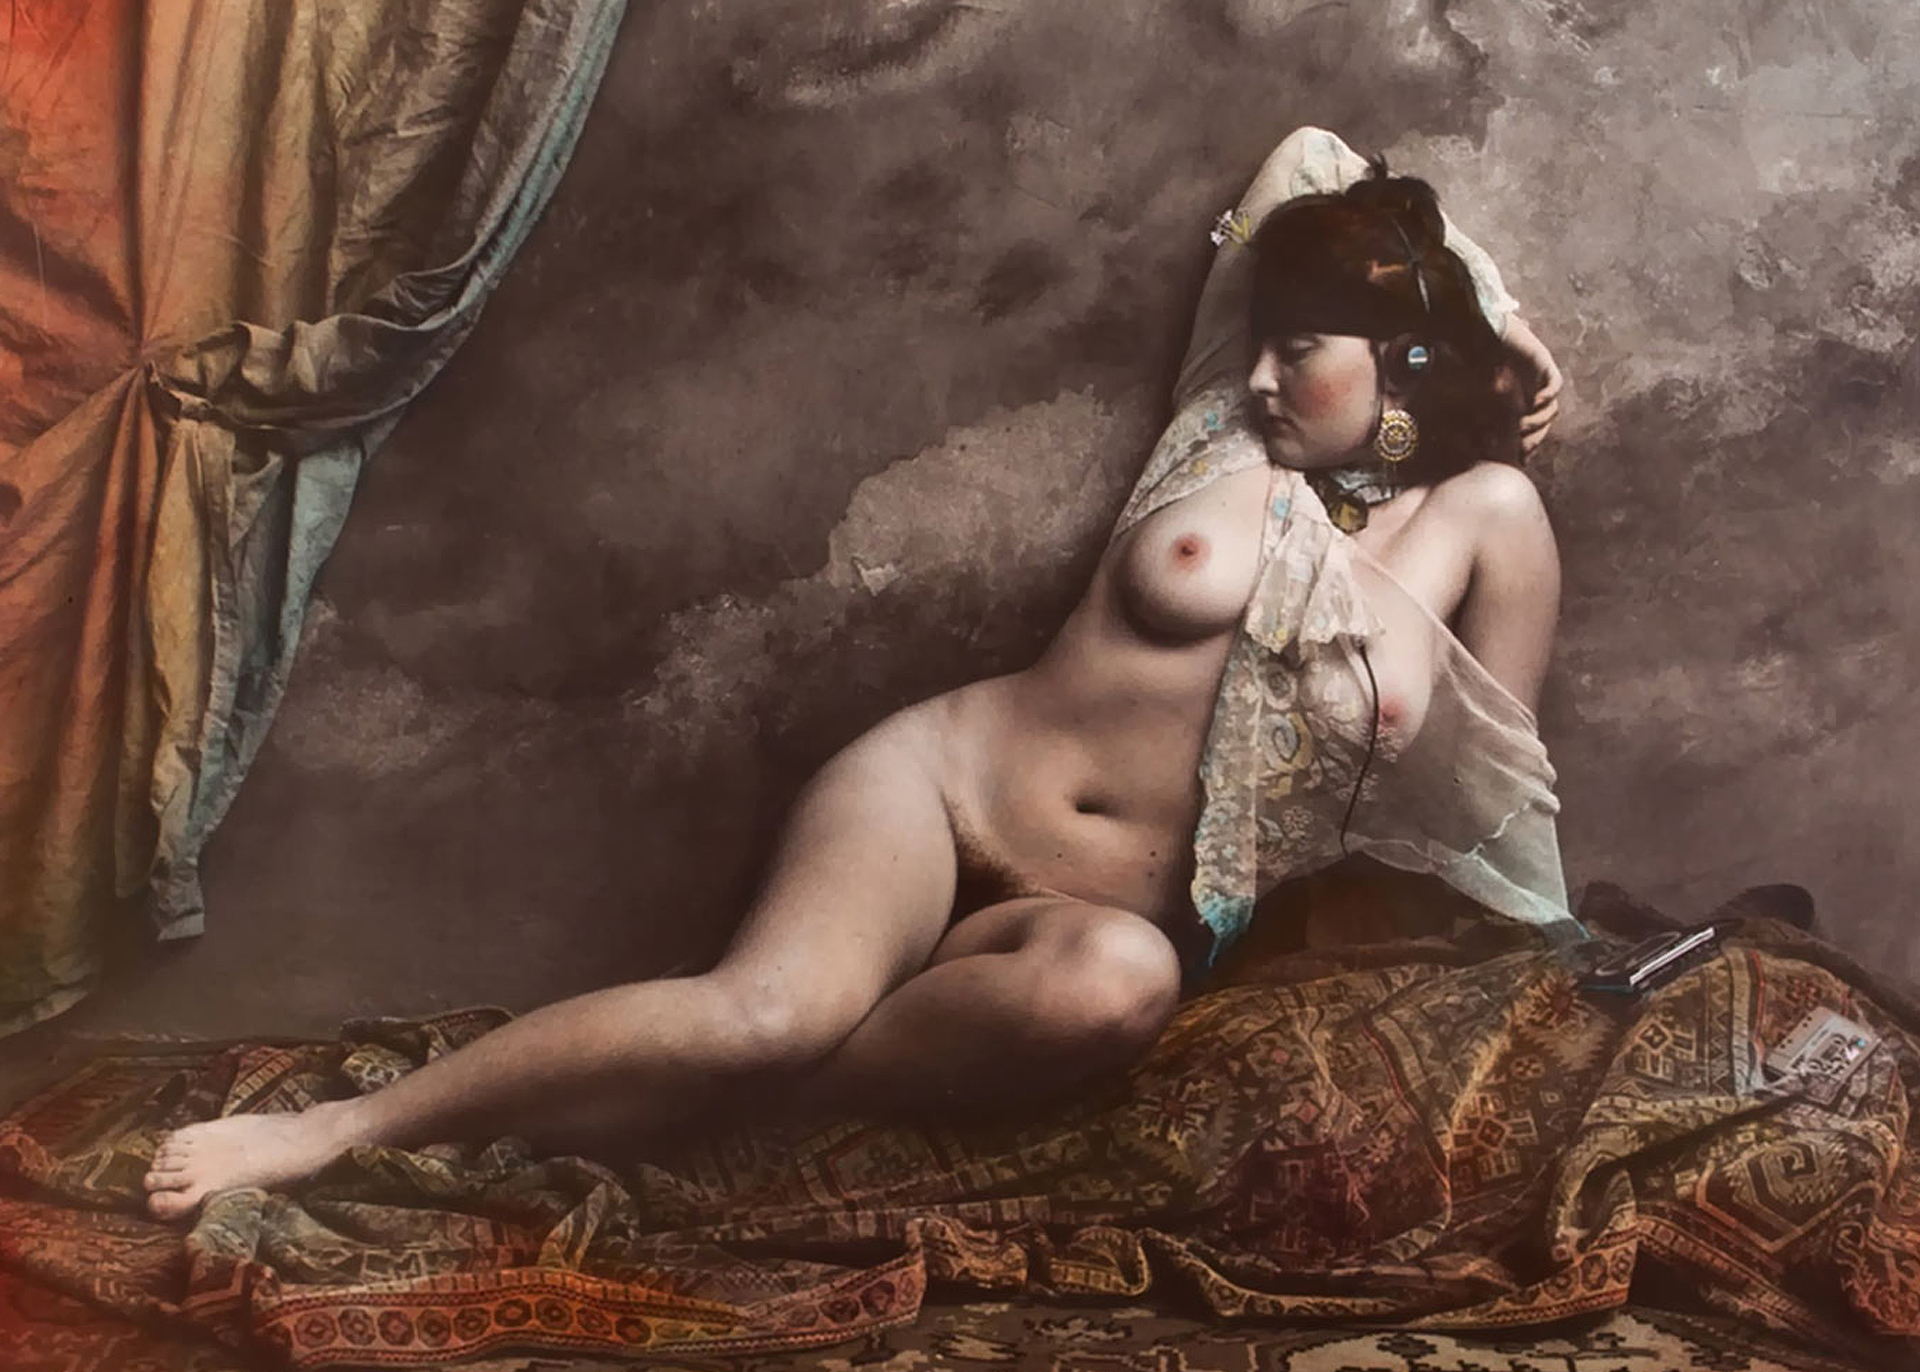 PHOTOGRAPHY : JAN SAUDEK